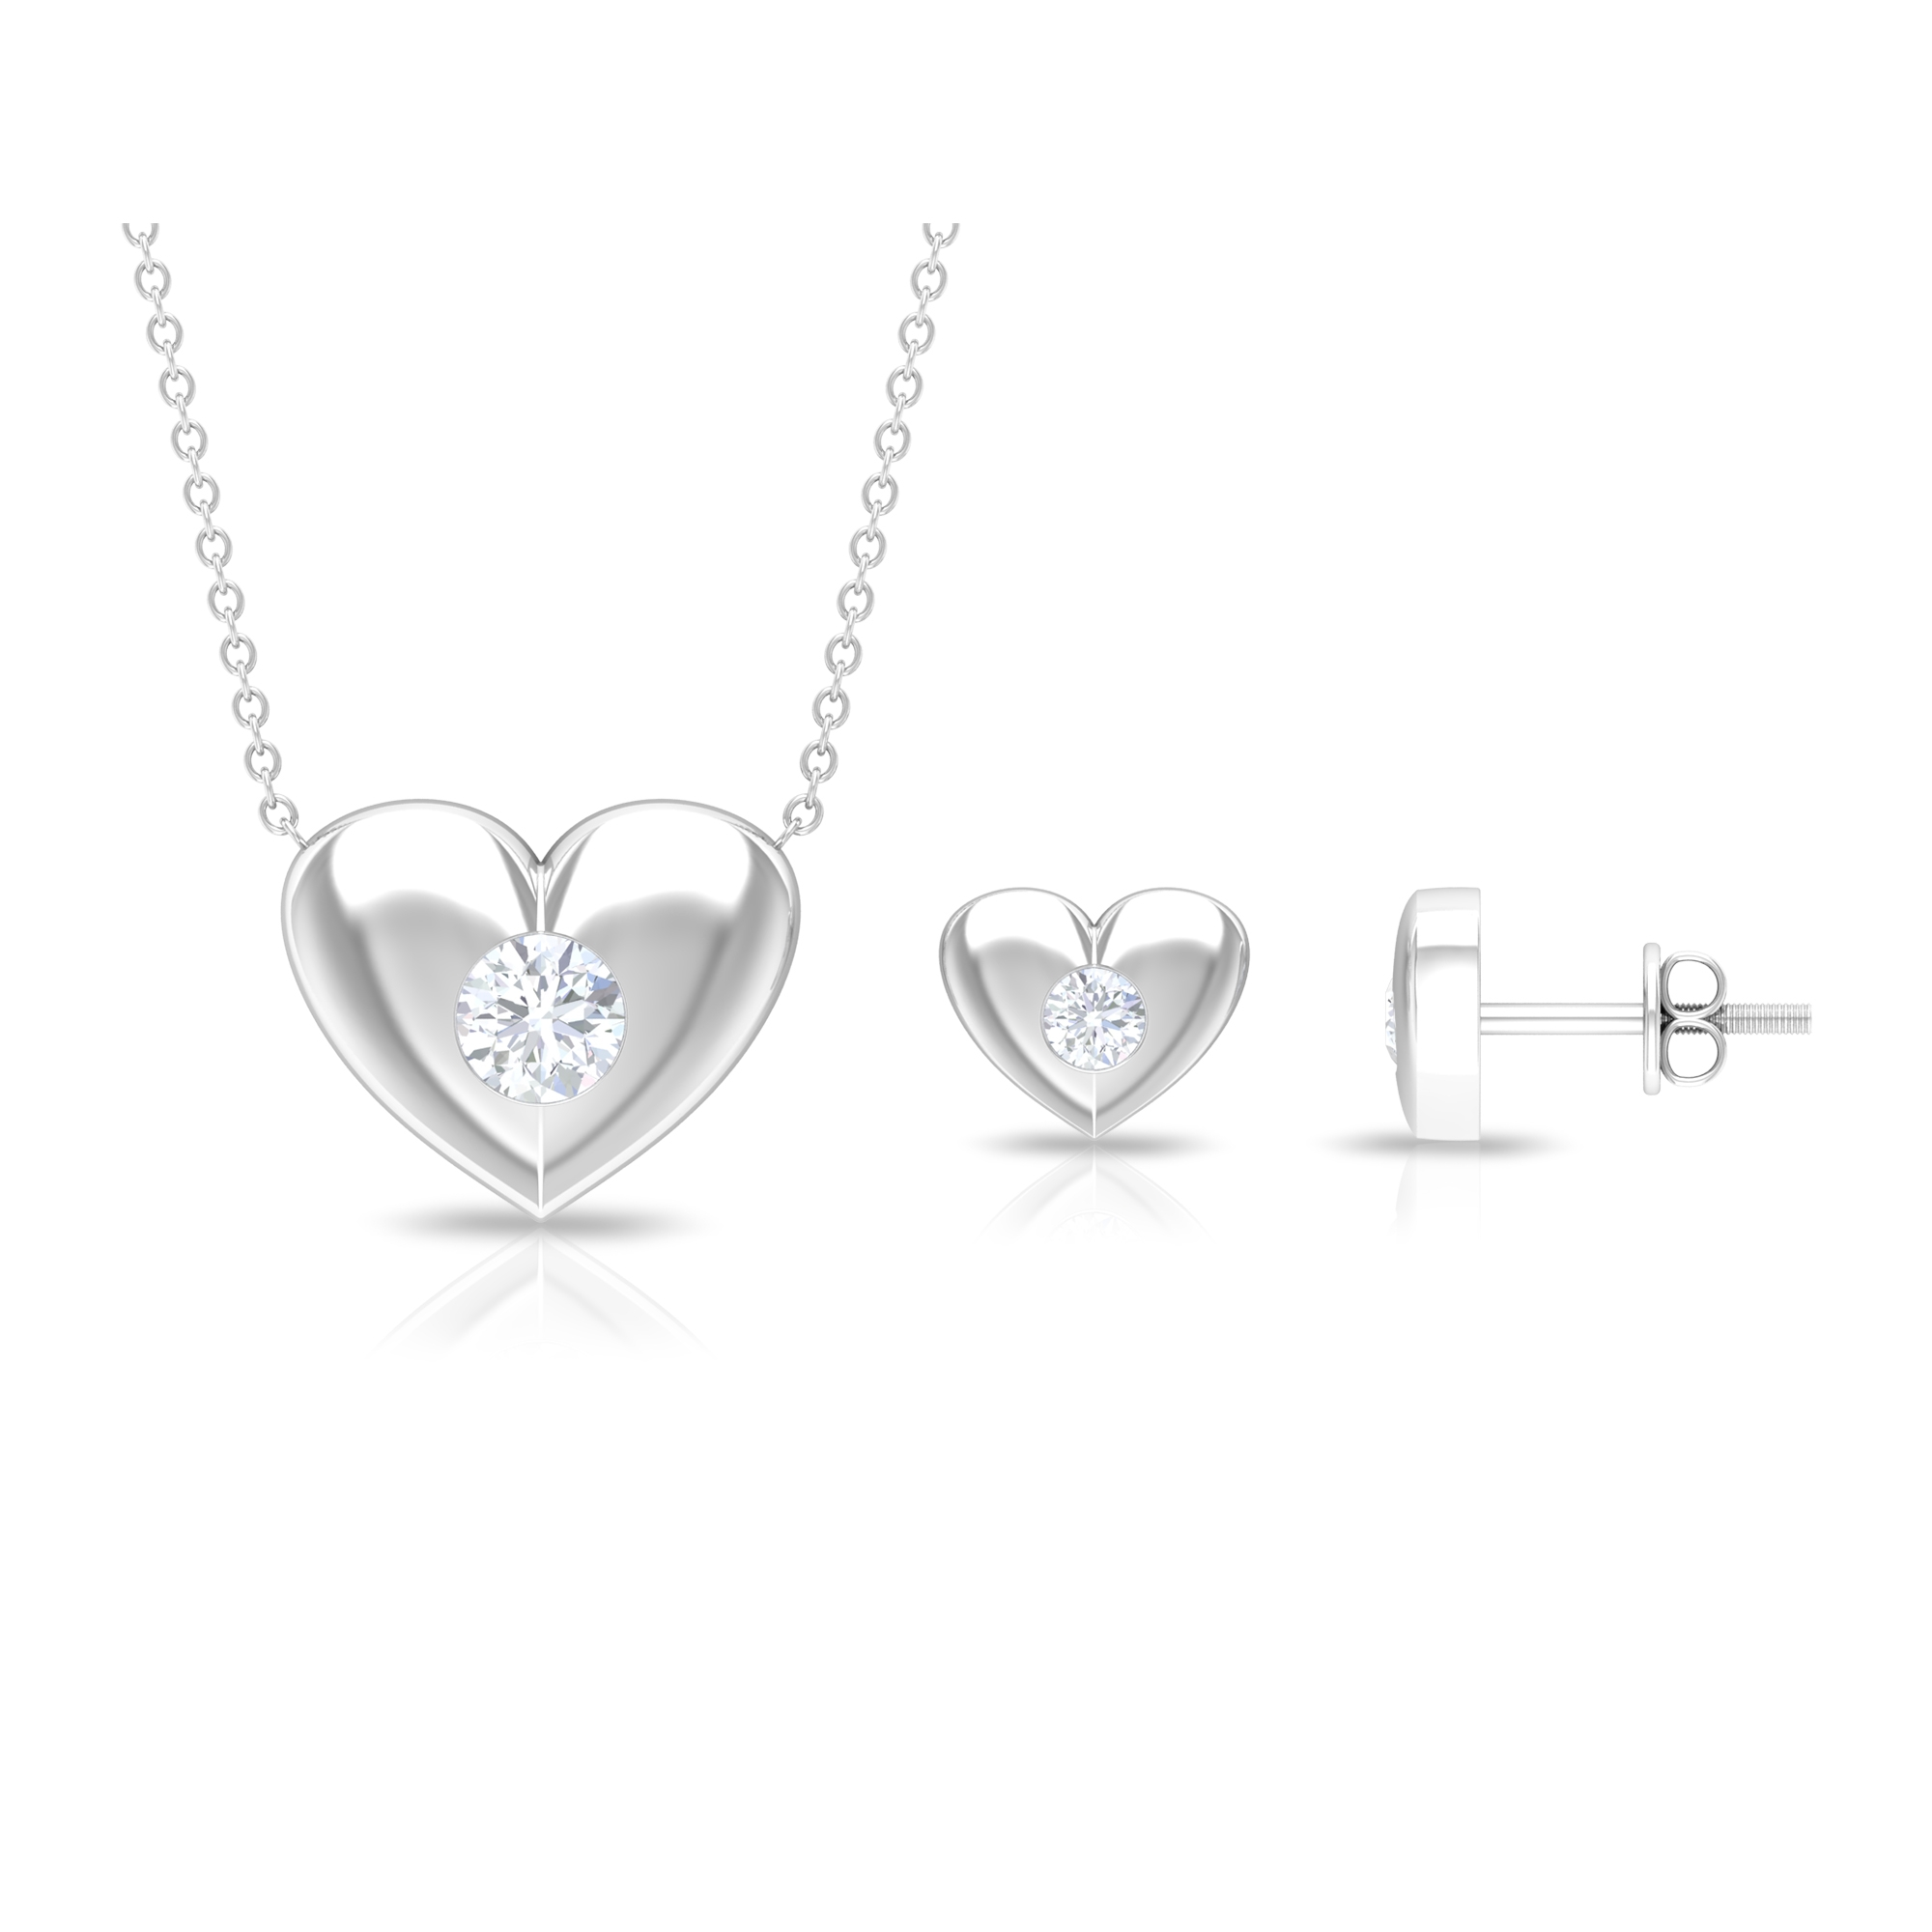 0.75 CT Gypsy Set Diamond and Gold Heart Jewelry Set for Women